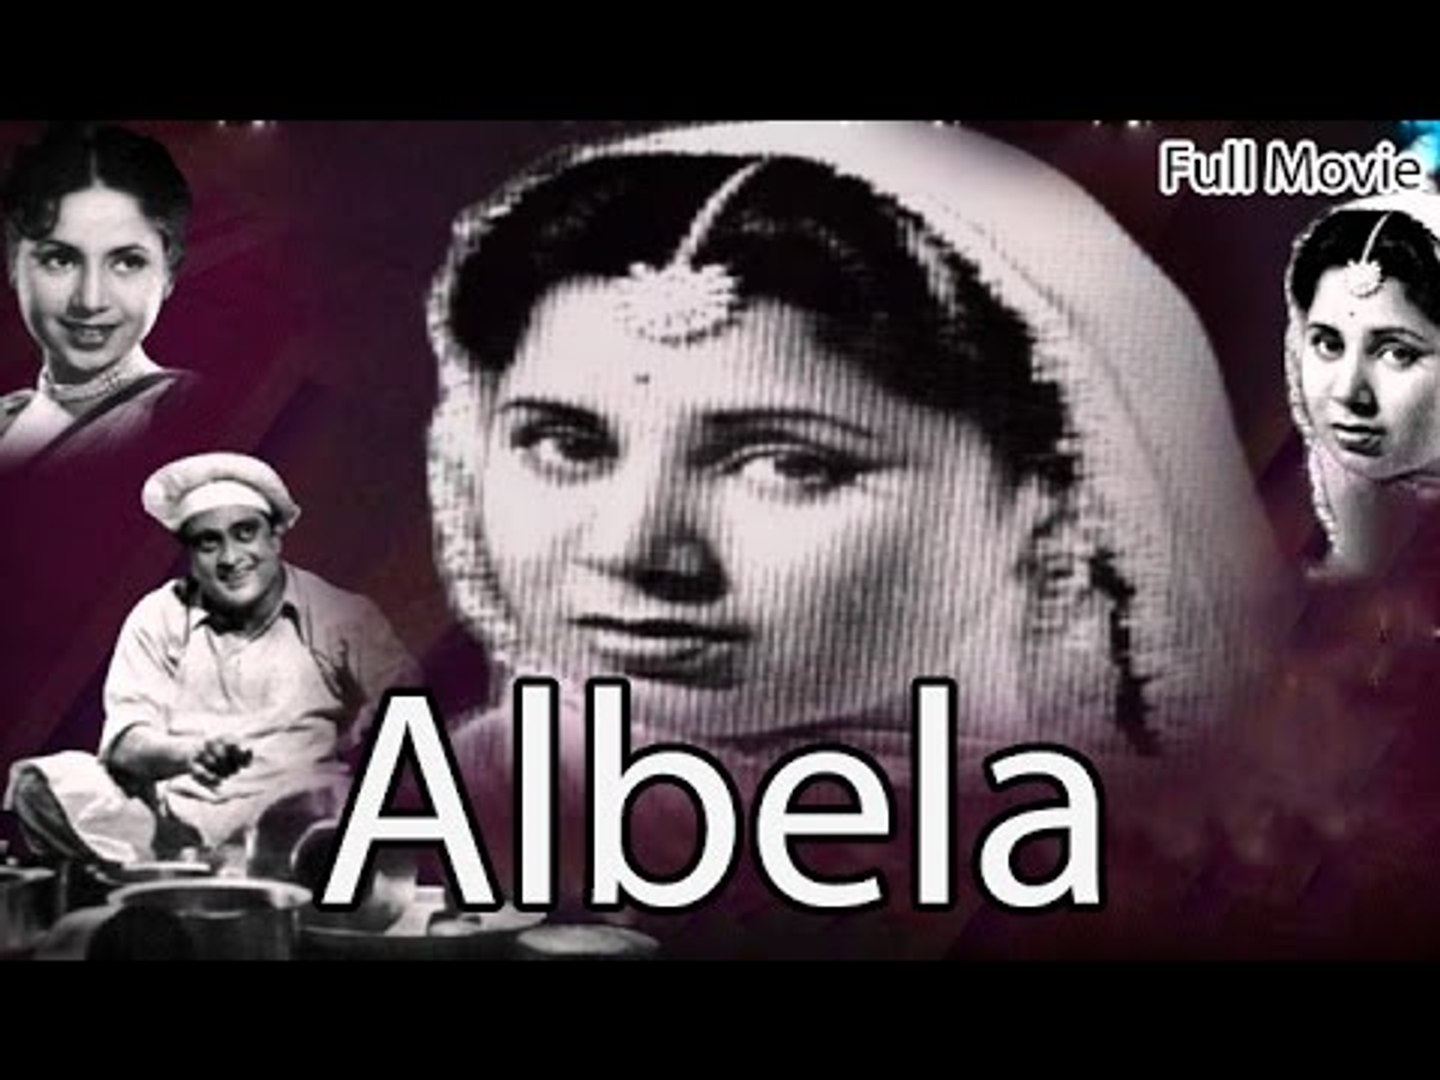 Albela | Full Hindi Movie | Popular Hindi Movies | Geeta Bali - Master Bhagwan